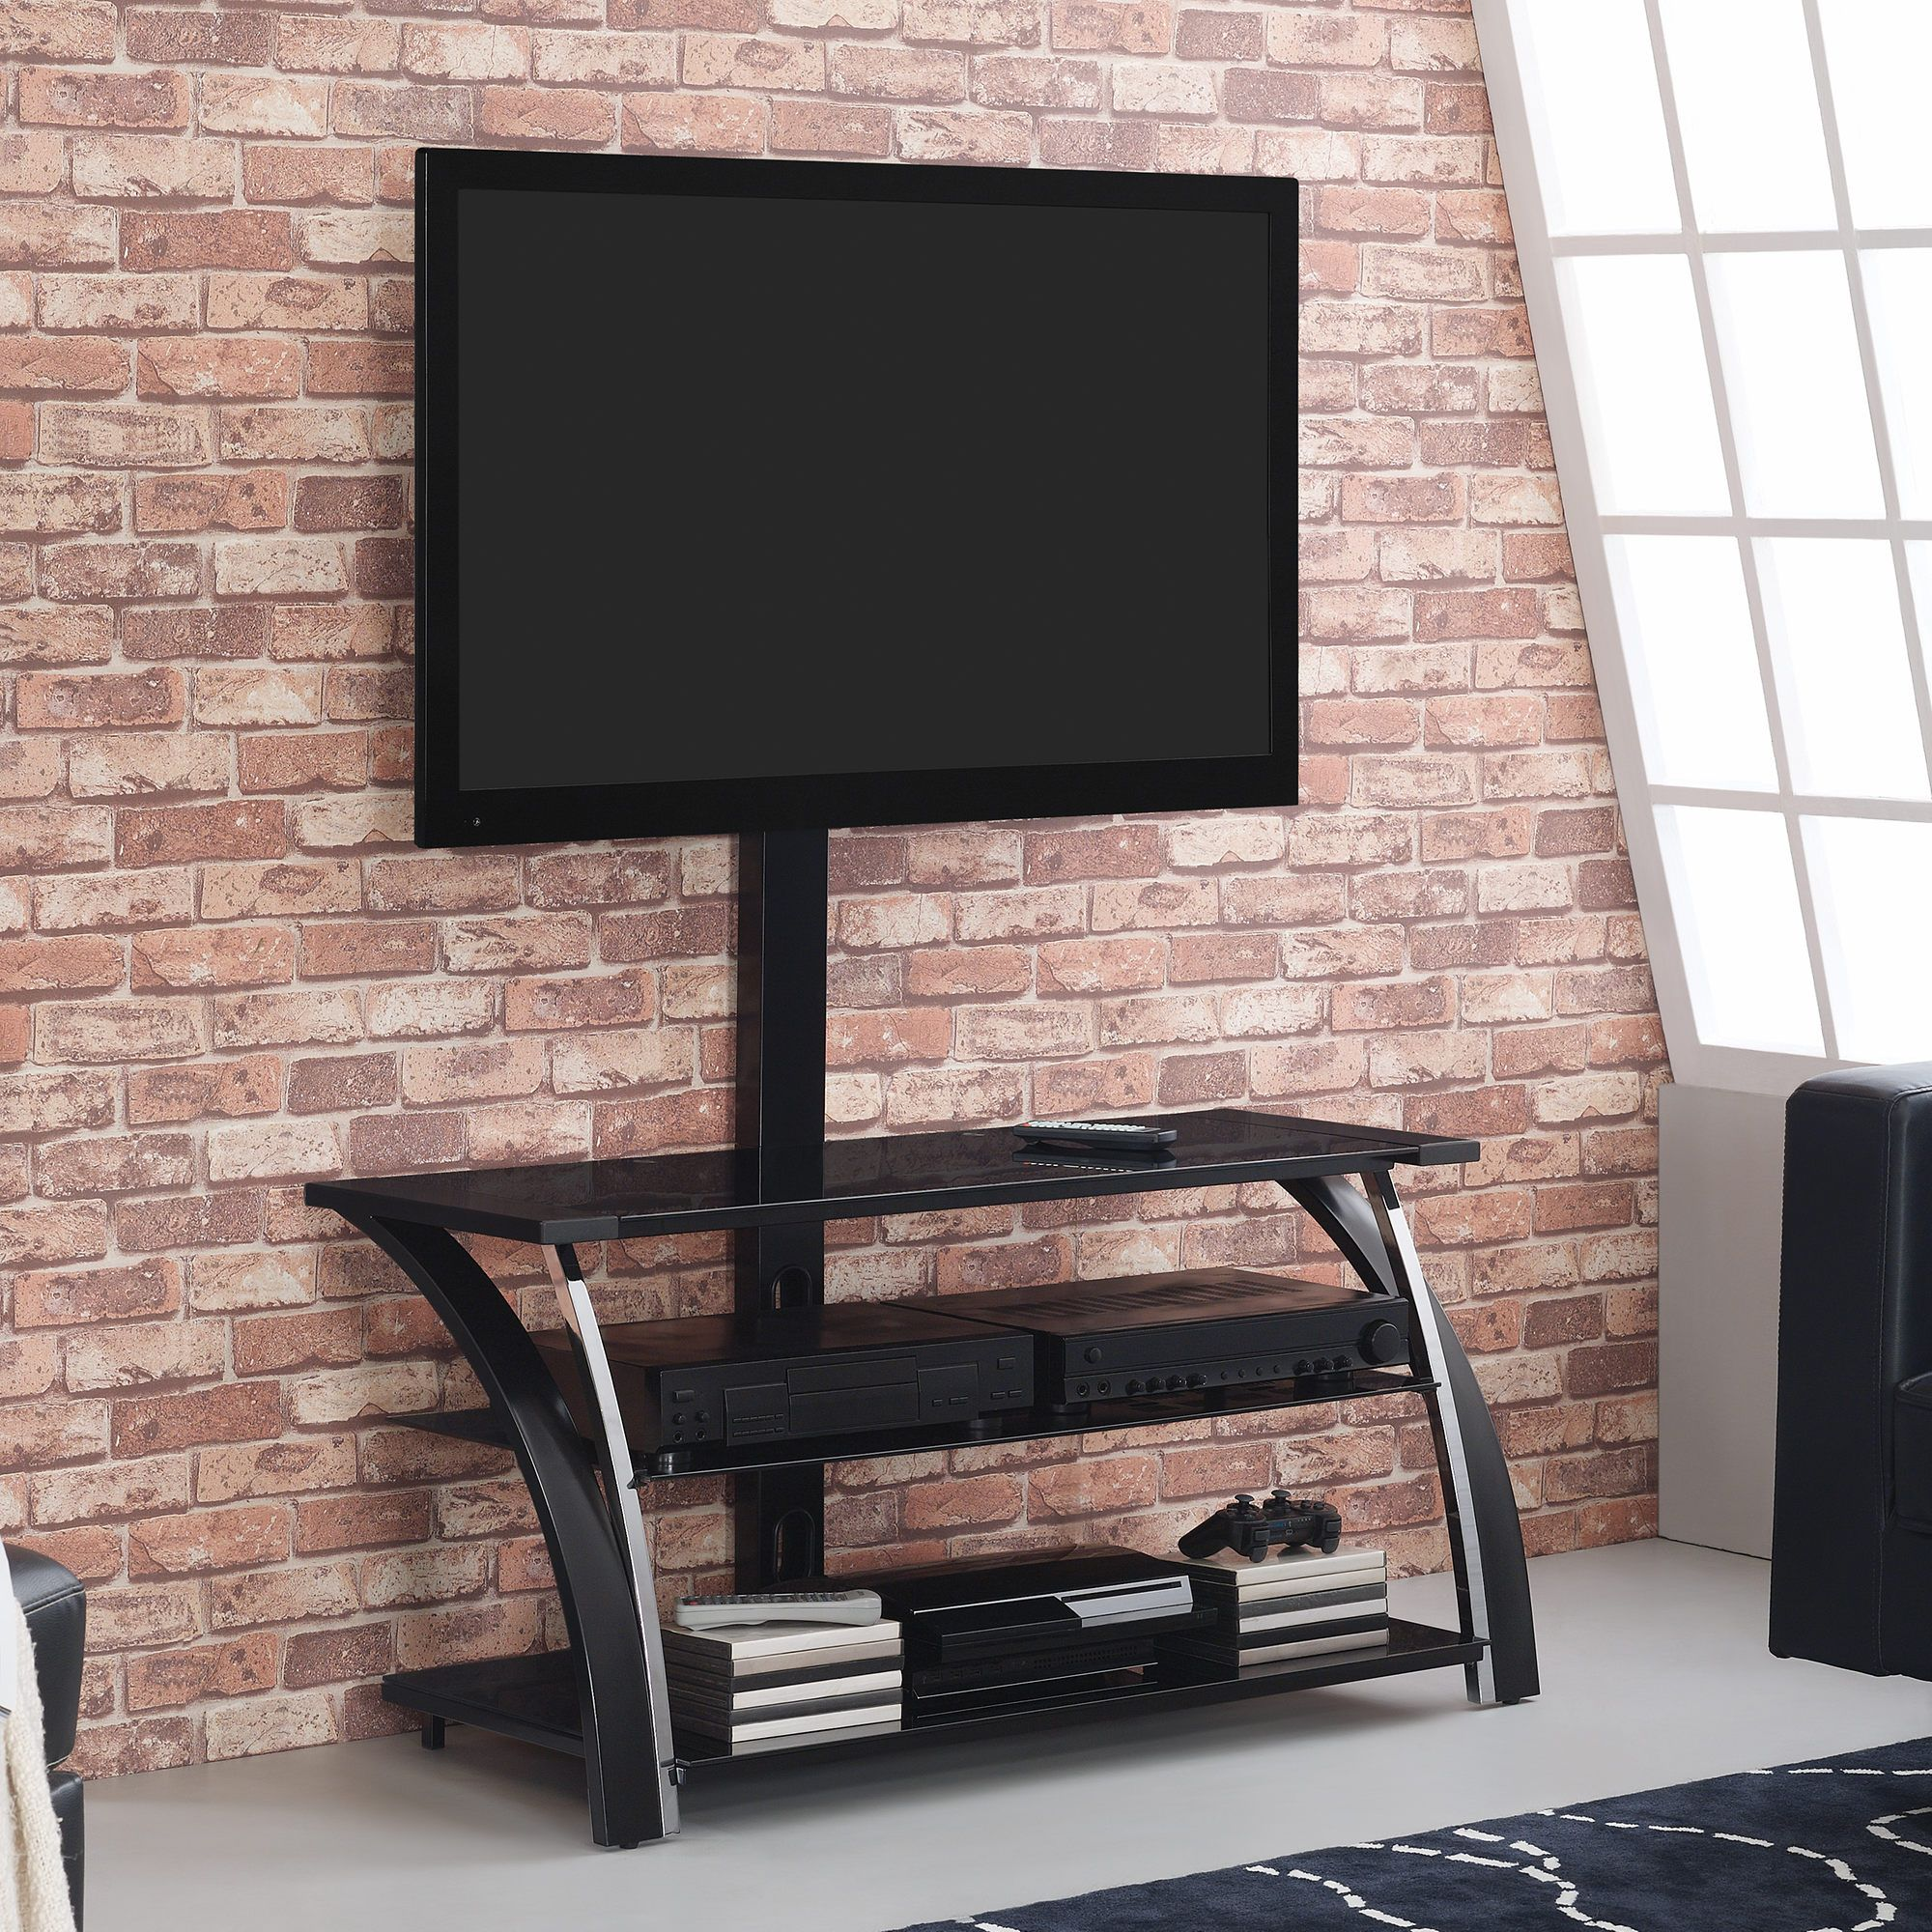 Morganville The Patriot Tv Stand Tv Furniture Tv Stand Room